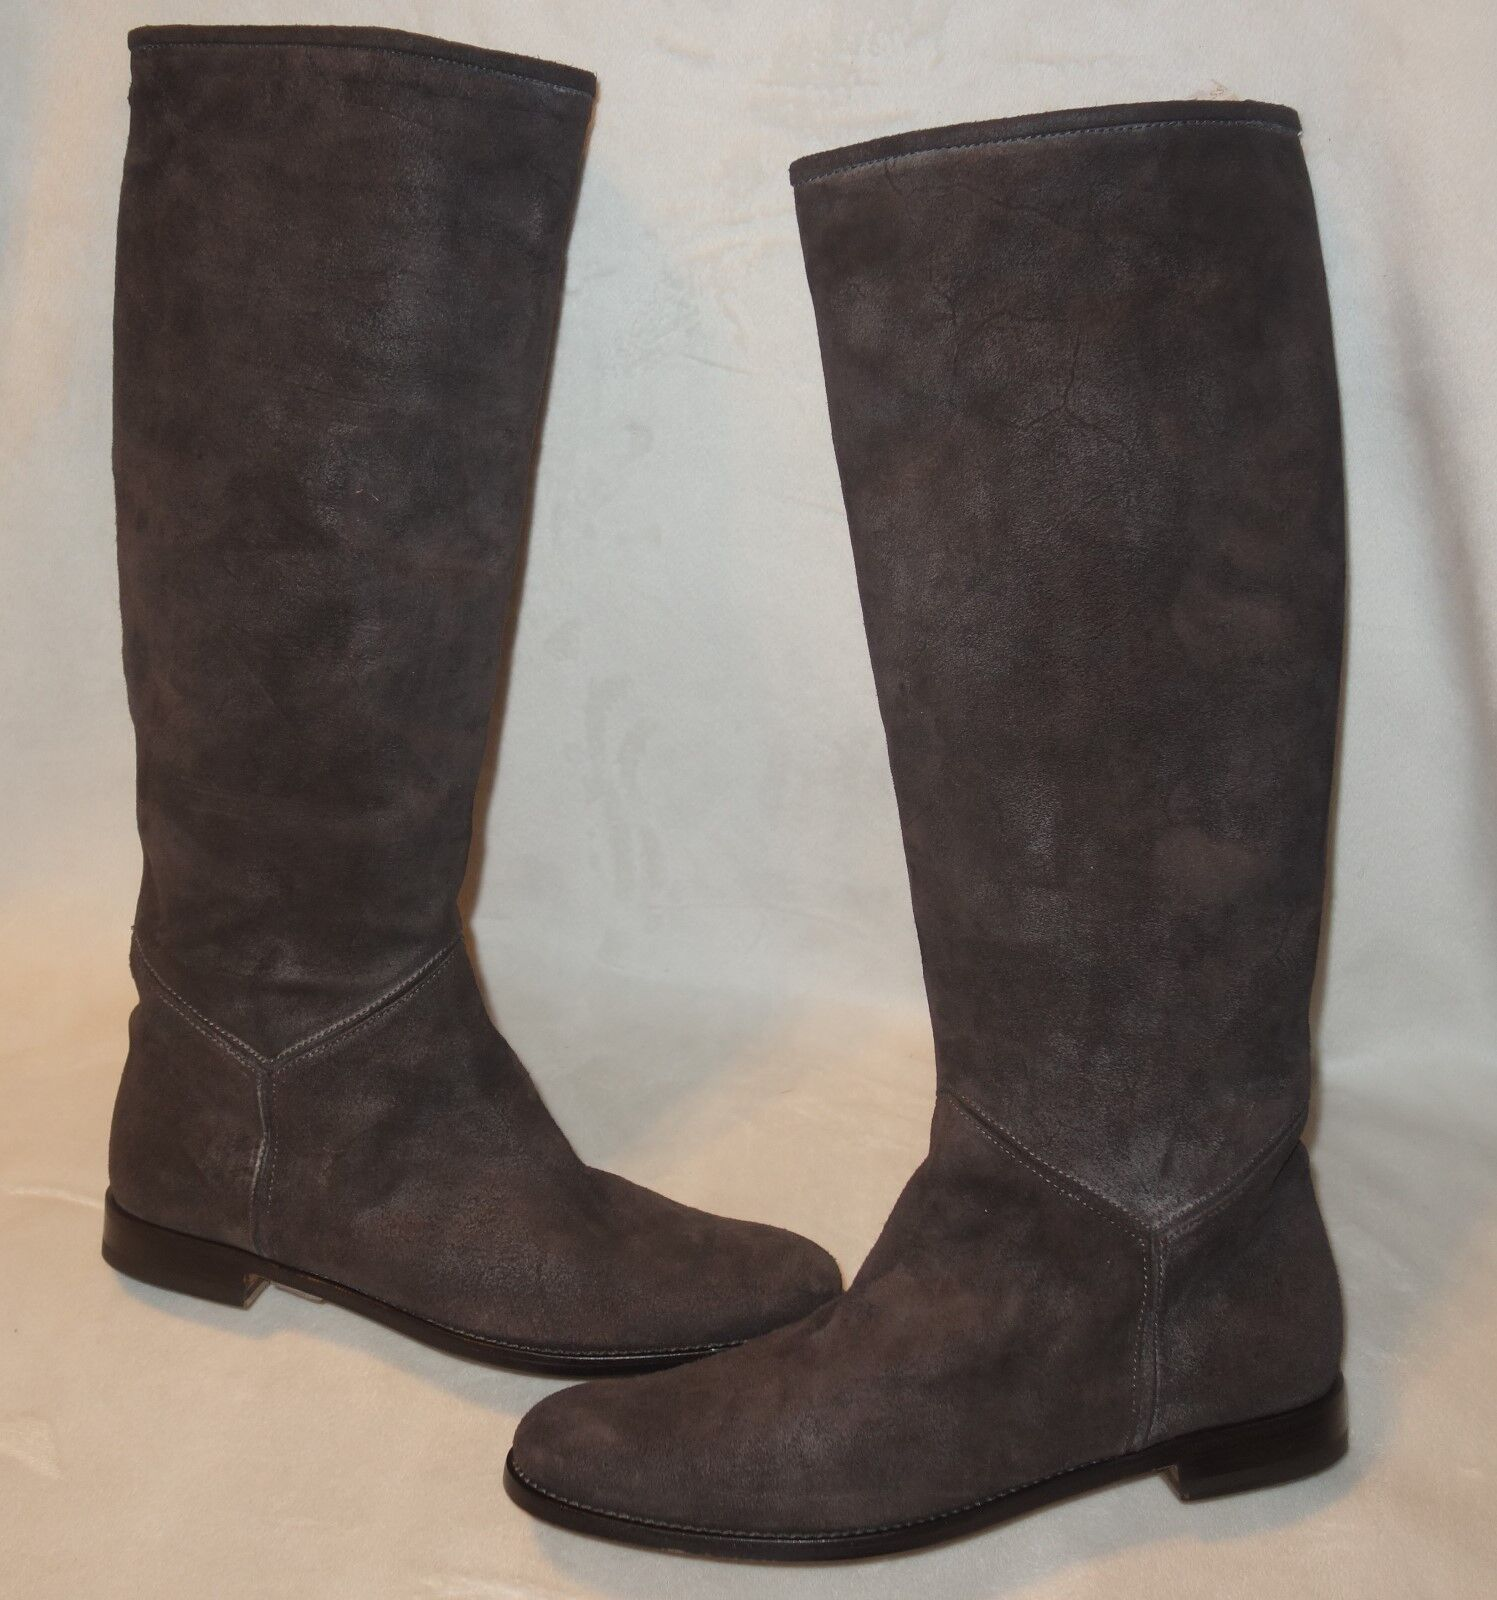 Pollini boots riding knee-high 100% pelle boots sz 40 made in italy